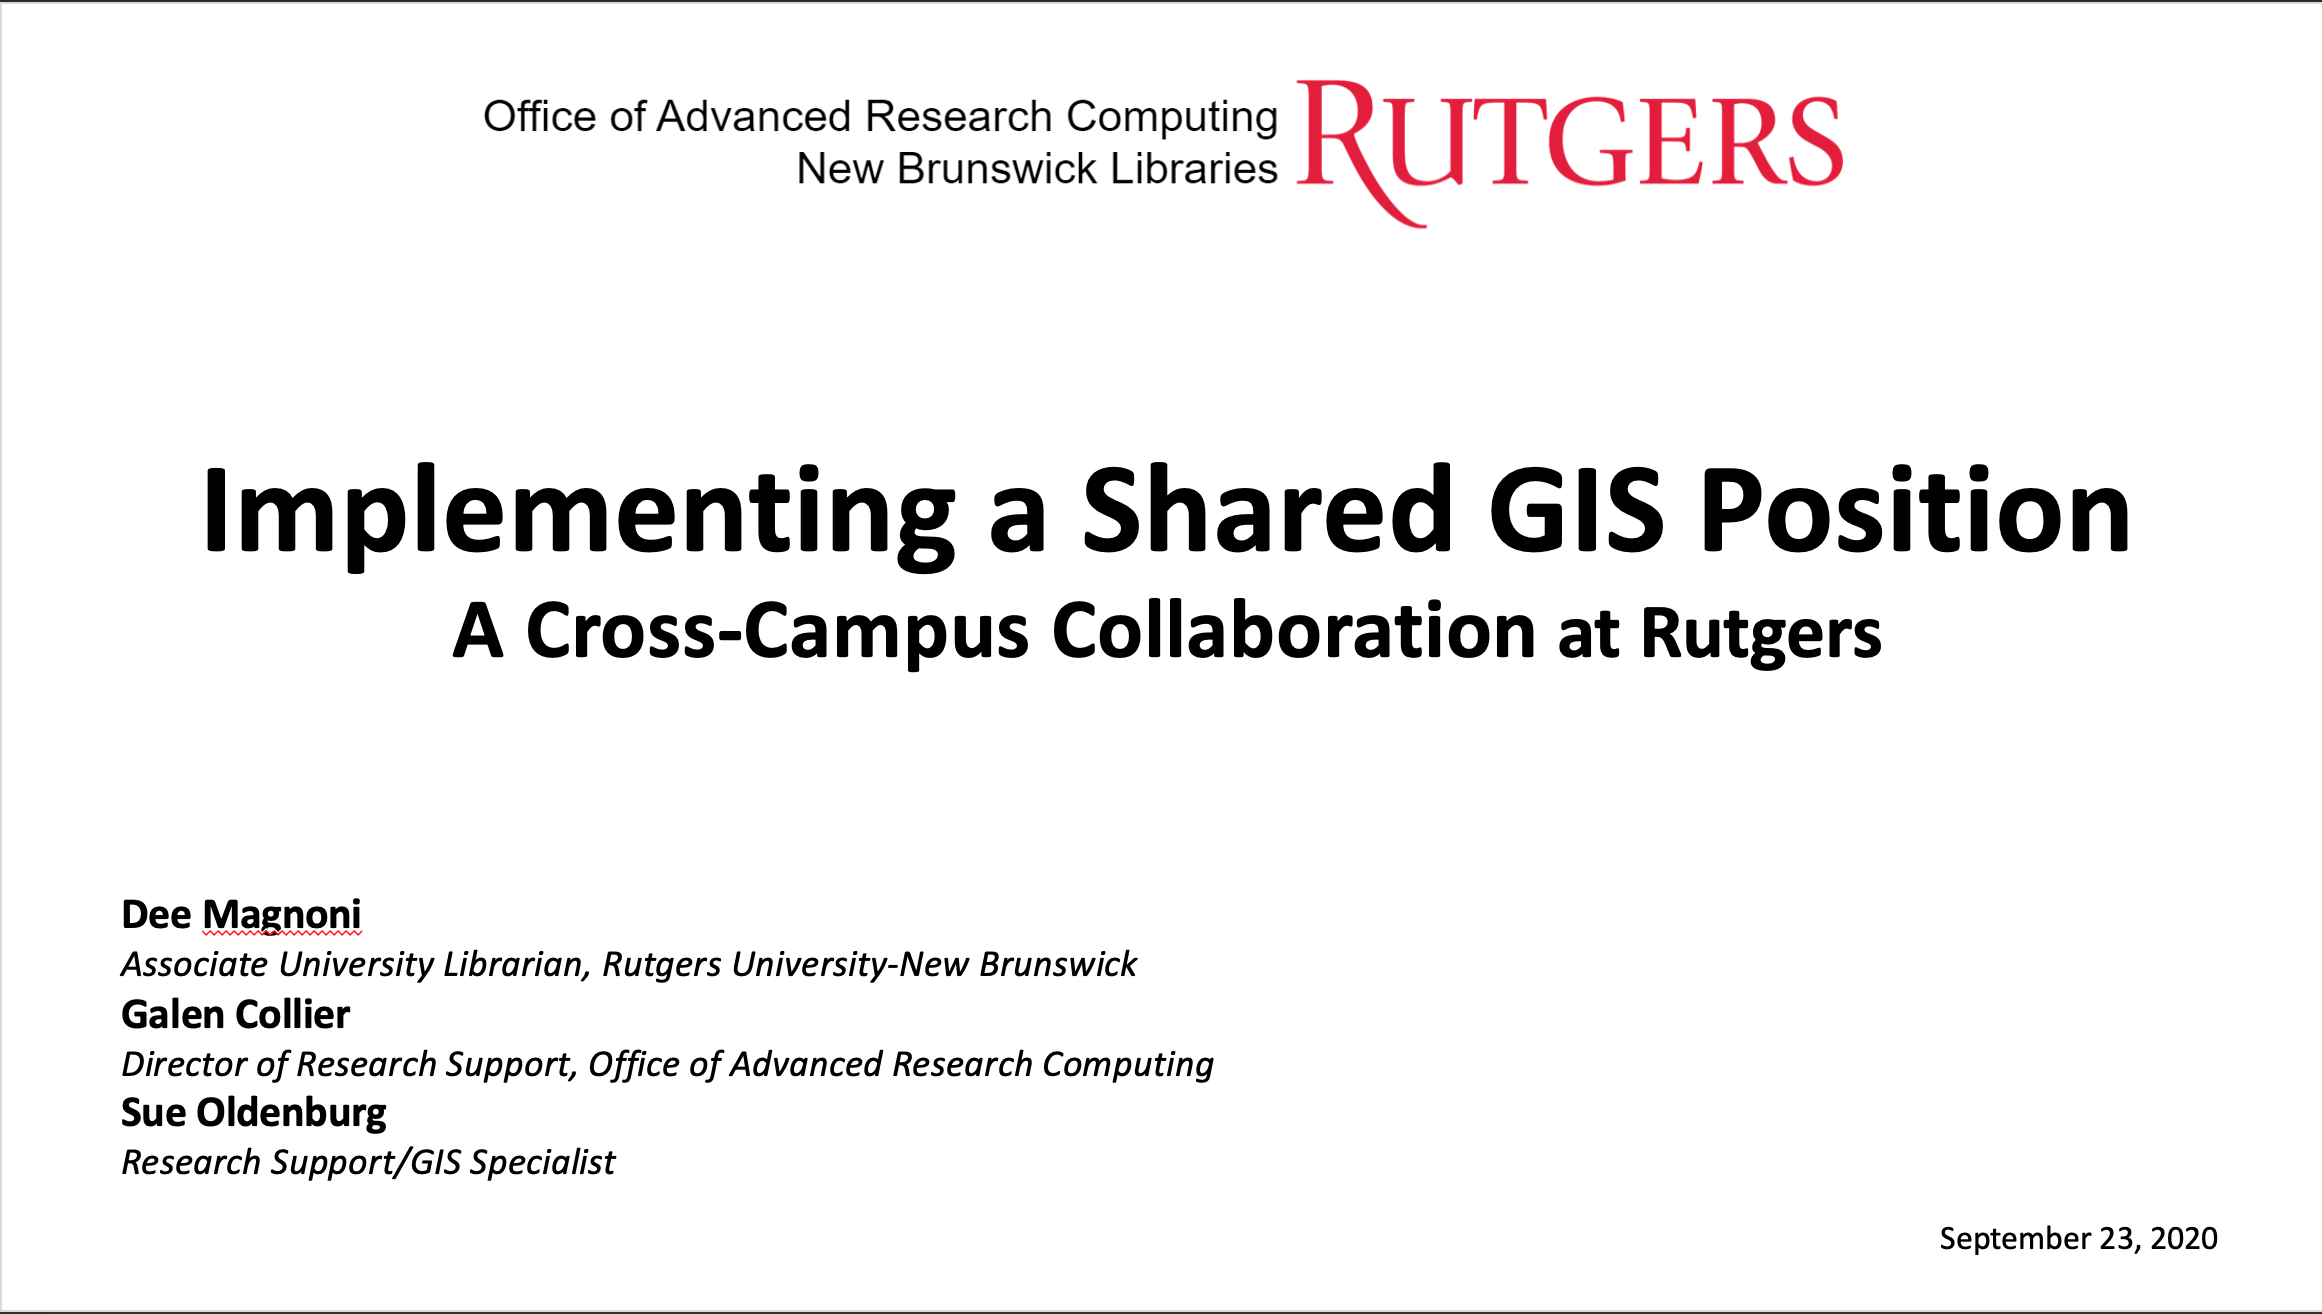 Implementing a shared GIS position at Rutgers University through cross-campus collaboration